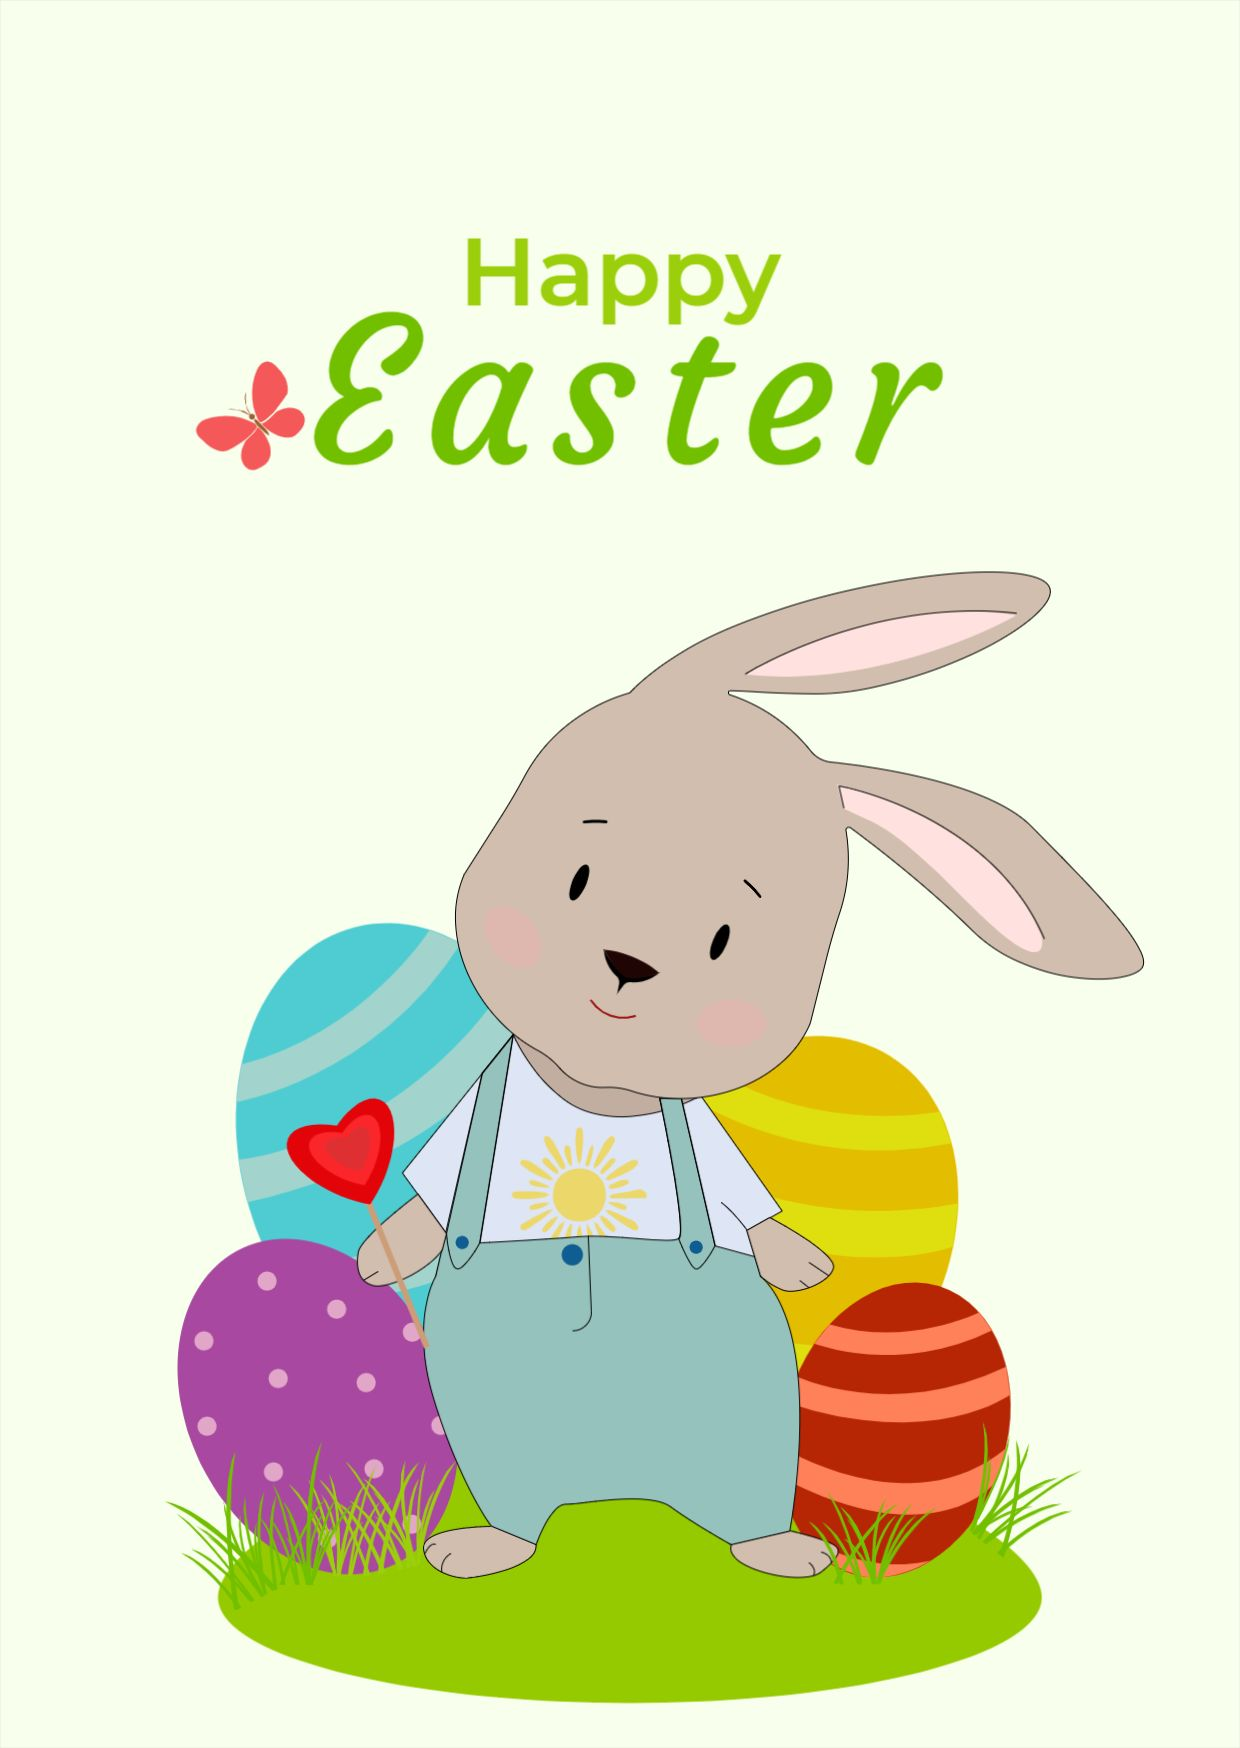 Easter Day Greetings Card Template